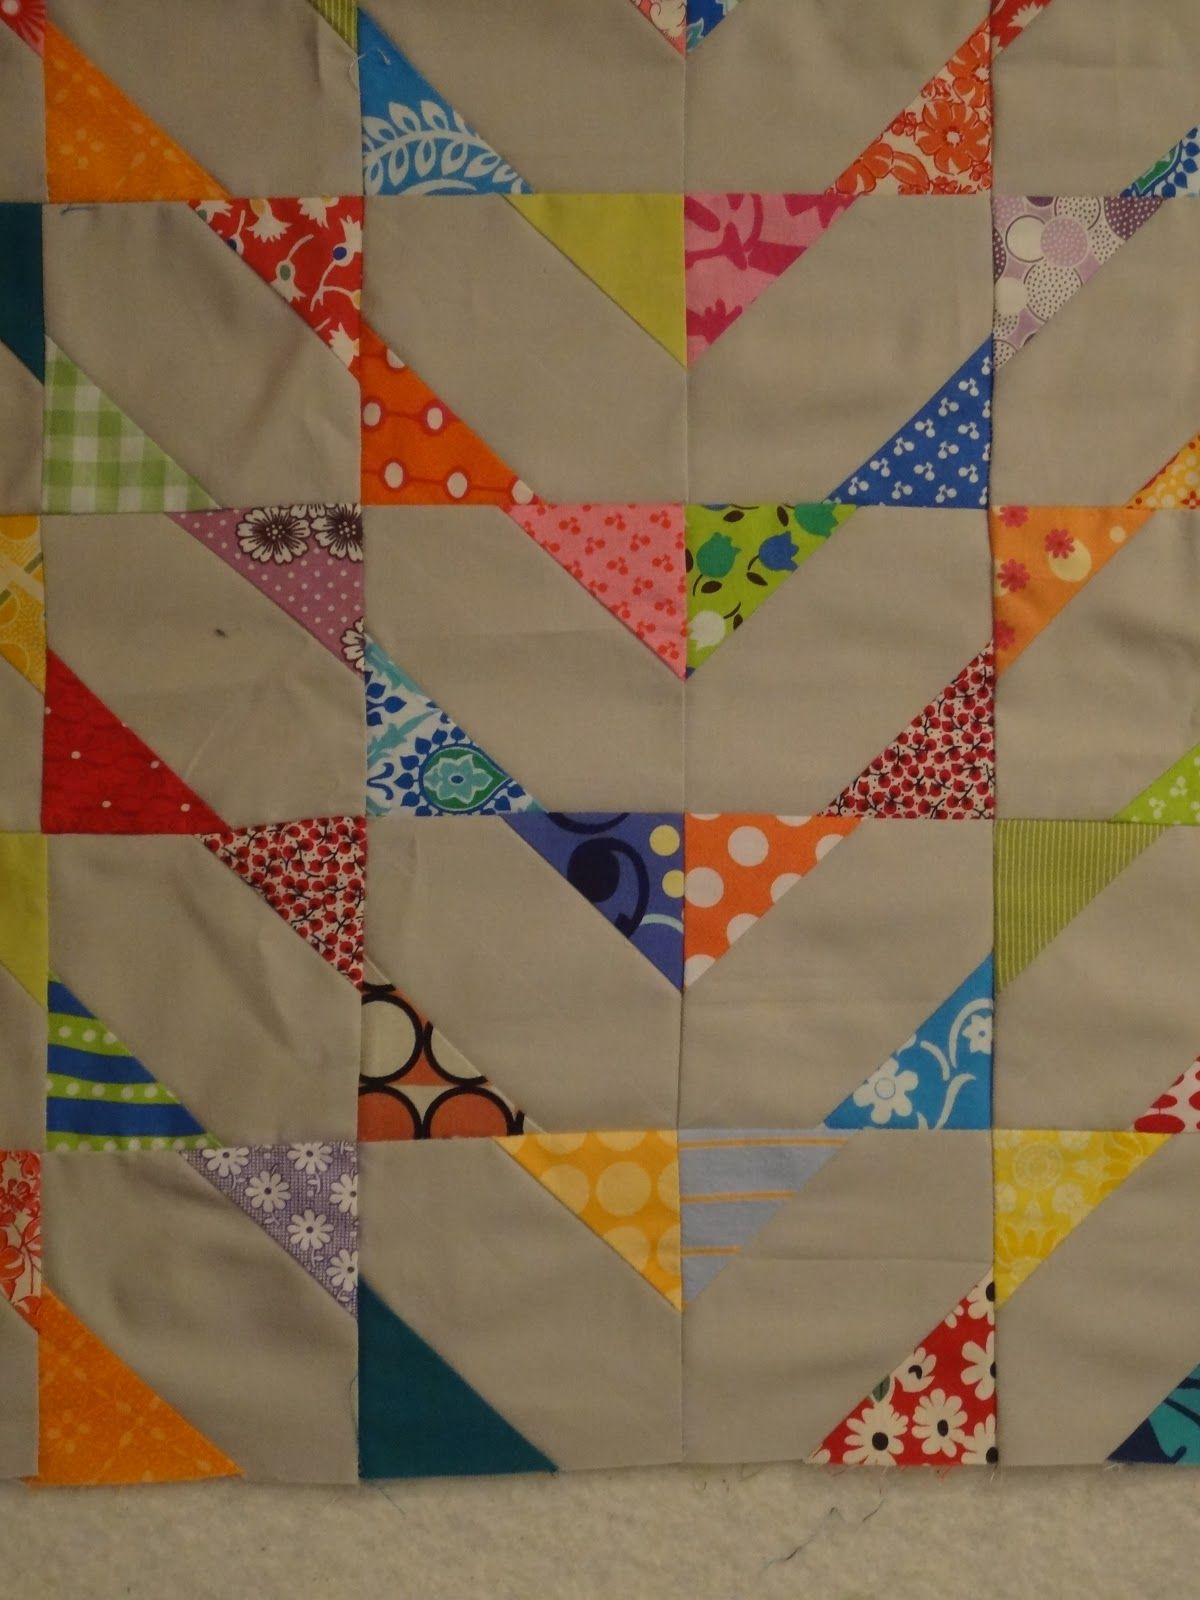 Andie johnson sews design wall monday quilting pinterest andie johnson sews modern scrappy baby quilt free pattern and tutorial jeuxipadfo Choice Image